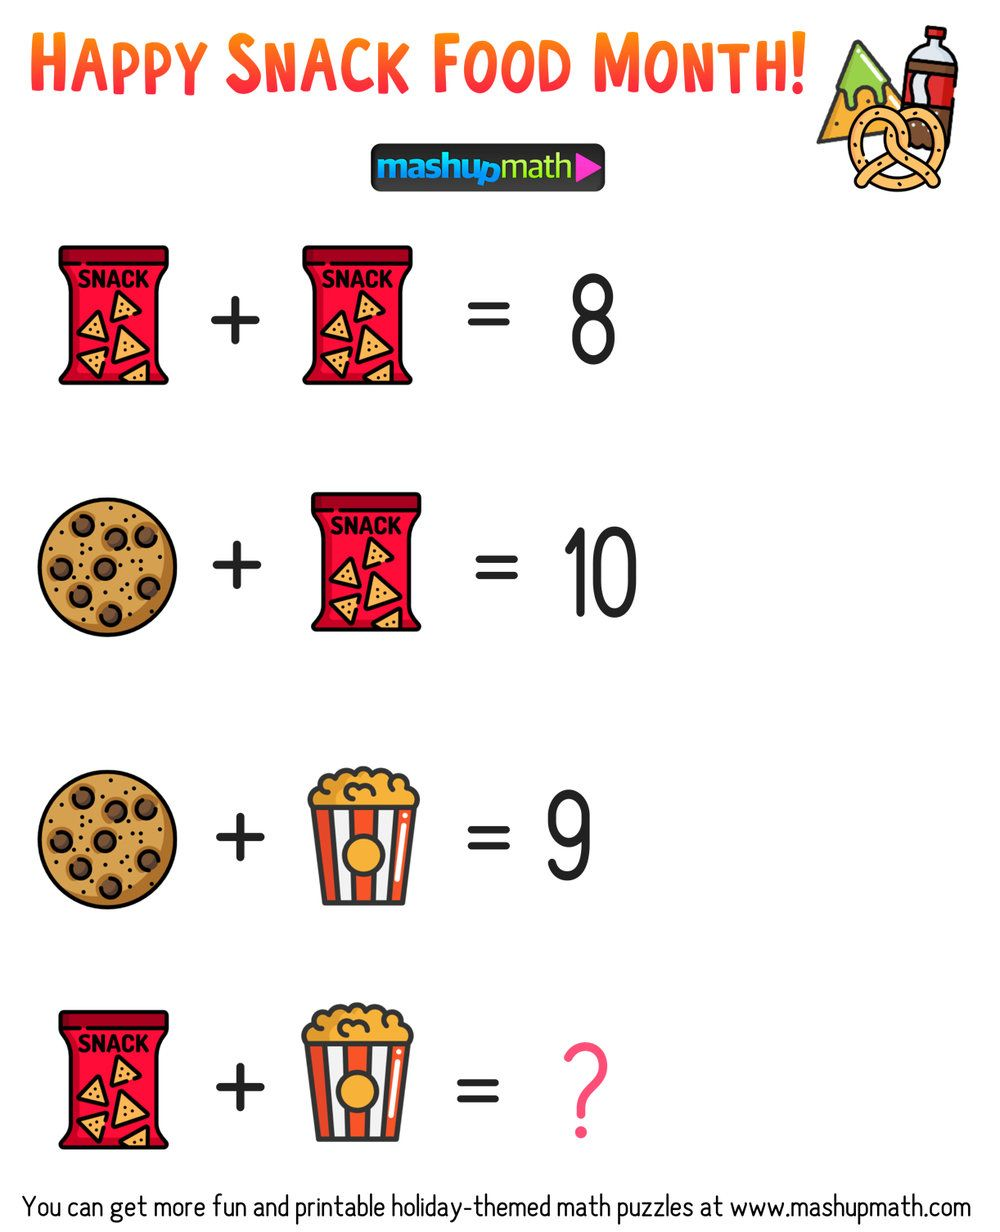 medium resolution of Free Math Brain Teaser Puzzles for Kids in Grades 1-6 to Celebrate Snack  Food Month! — Mashup Math   Maths puzzles